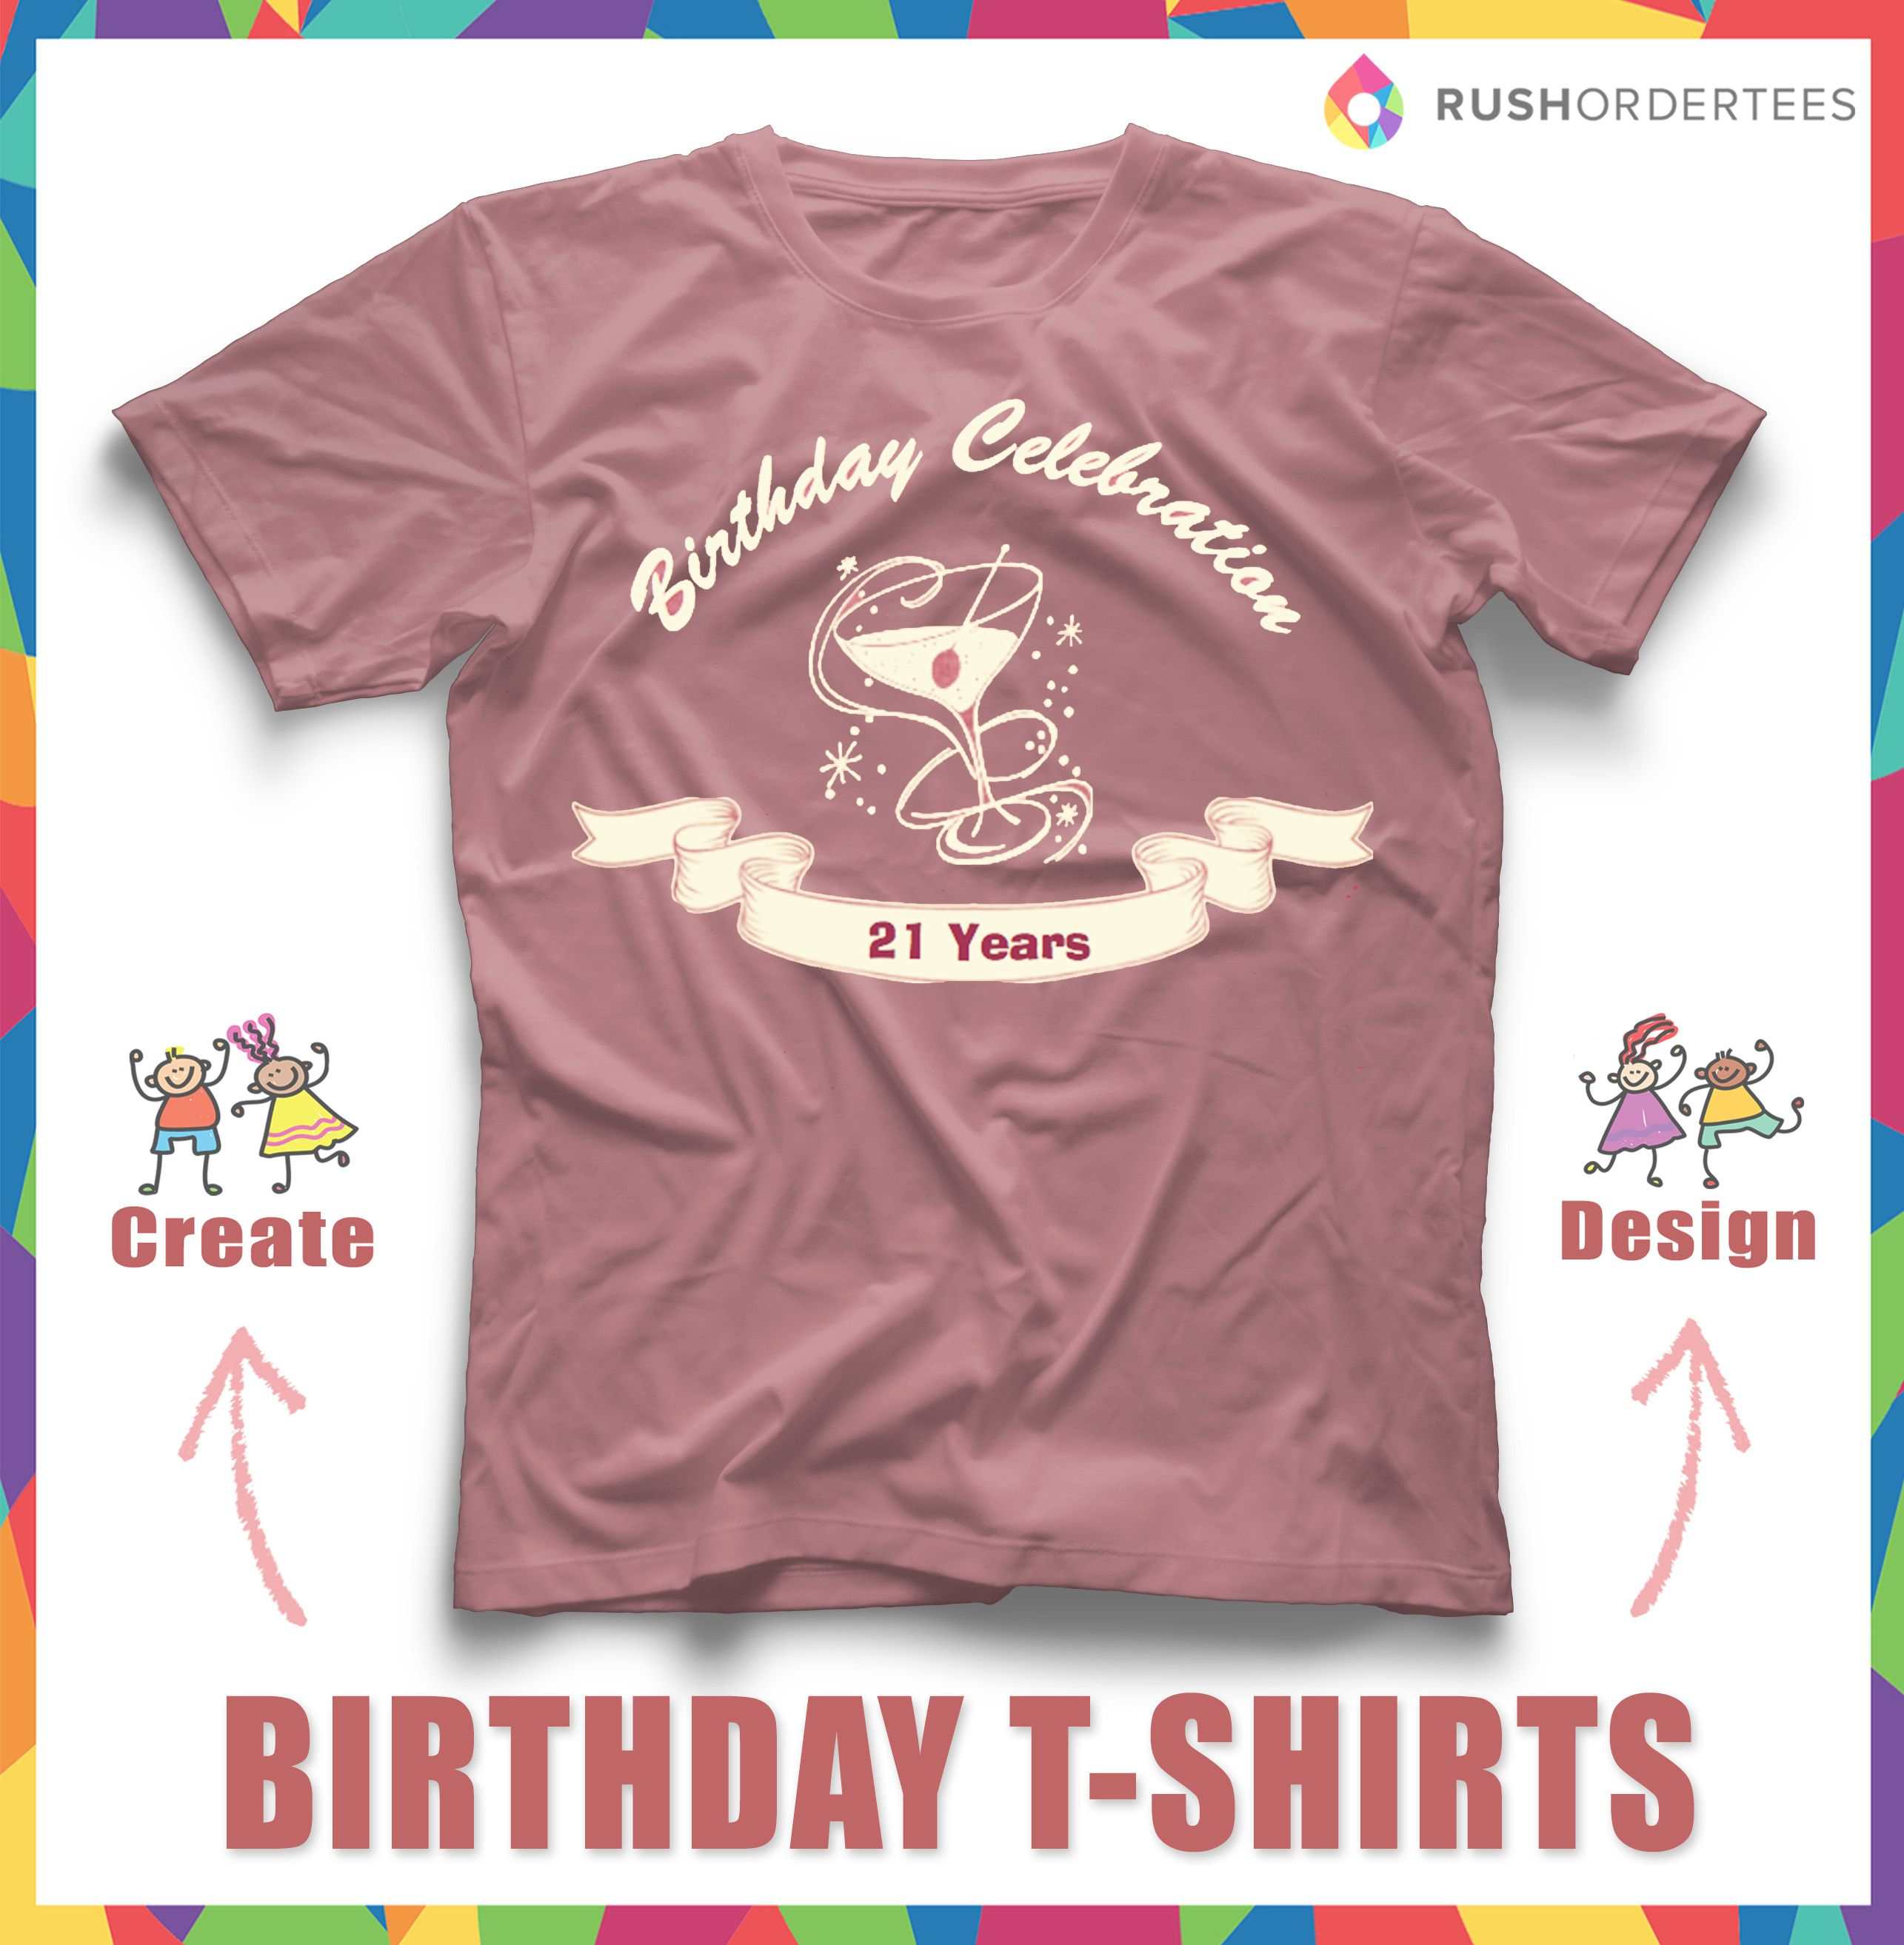 21st Custom Birthday Shirt Happy Idea Create Customshirts For Your BirthdayParty Yours Today